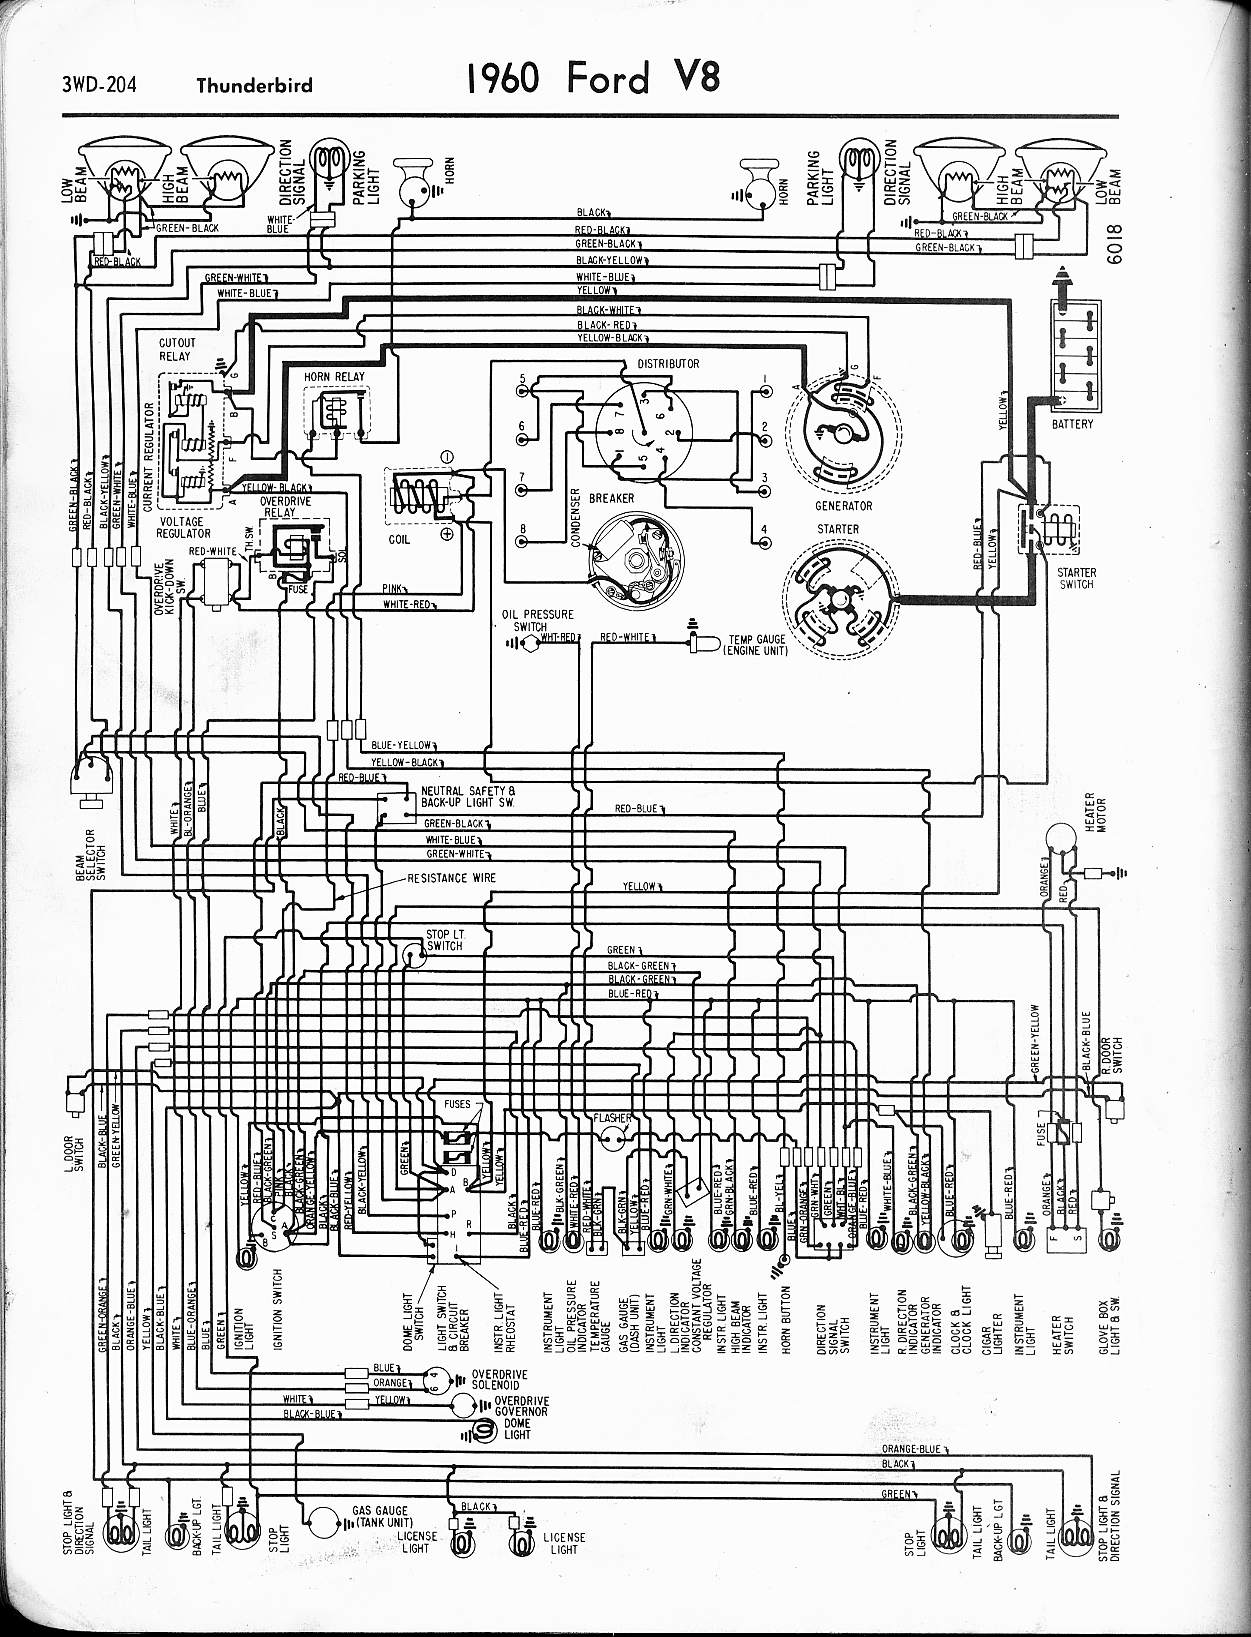 1956 Ford Fairlane Wiring Diagram Simple Wiring Diagram 1968 Ford F-250  Wiring Diagram 1968 Ford Galaxie Wiring Diagram